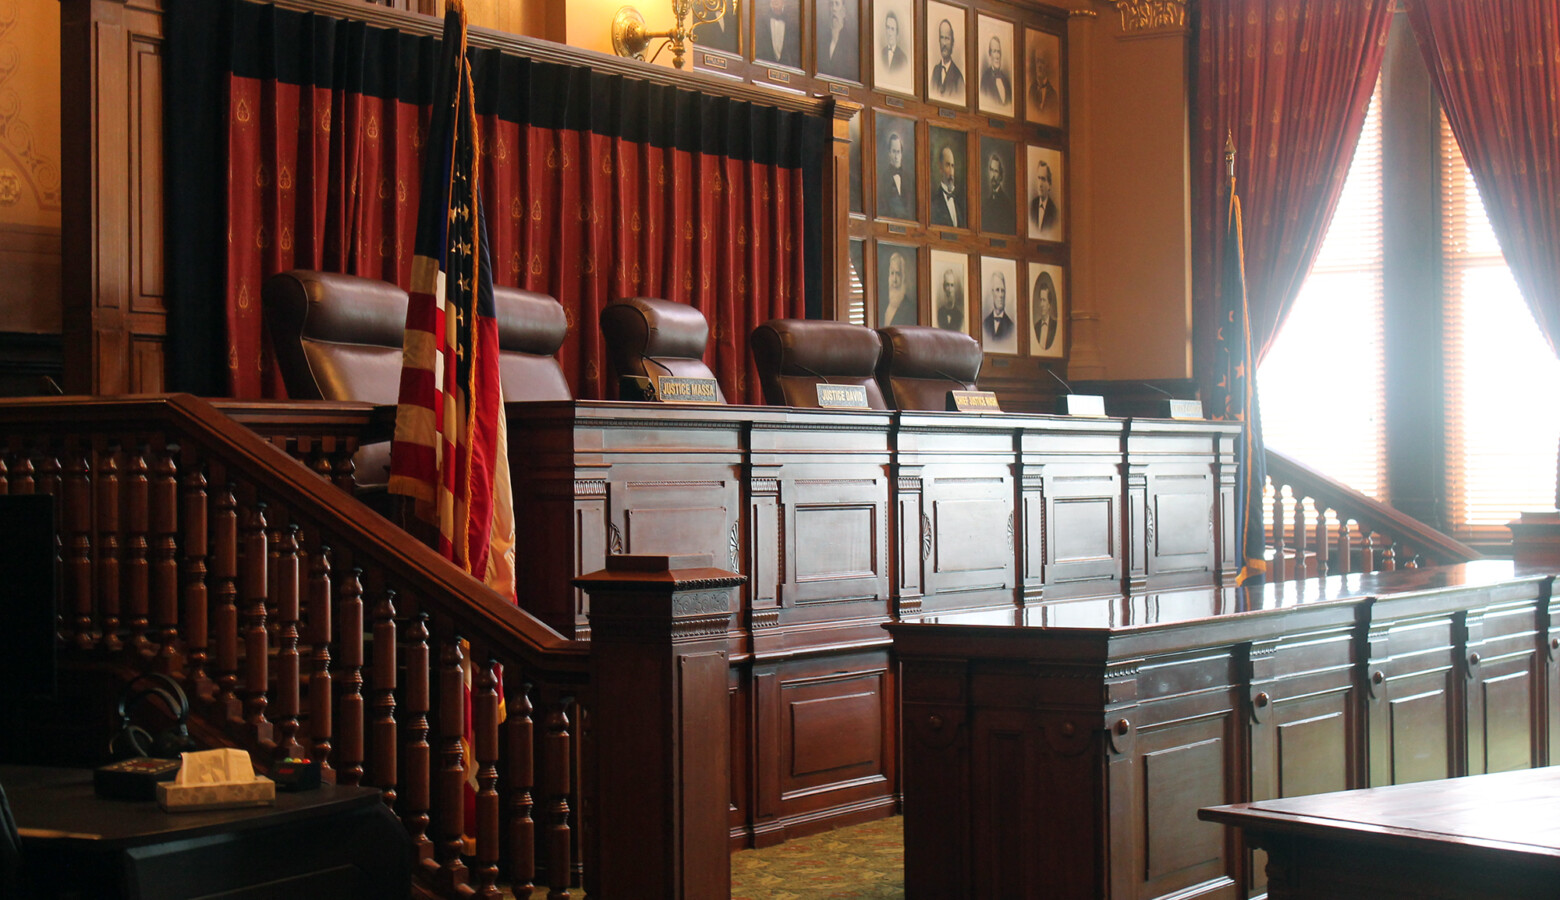 The Indiana Supreme Court decided the bar exam will be conducted via email; timed, but not proctored and open book. (Lauren Chapman/IPB News)